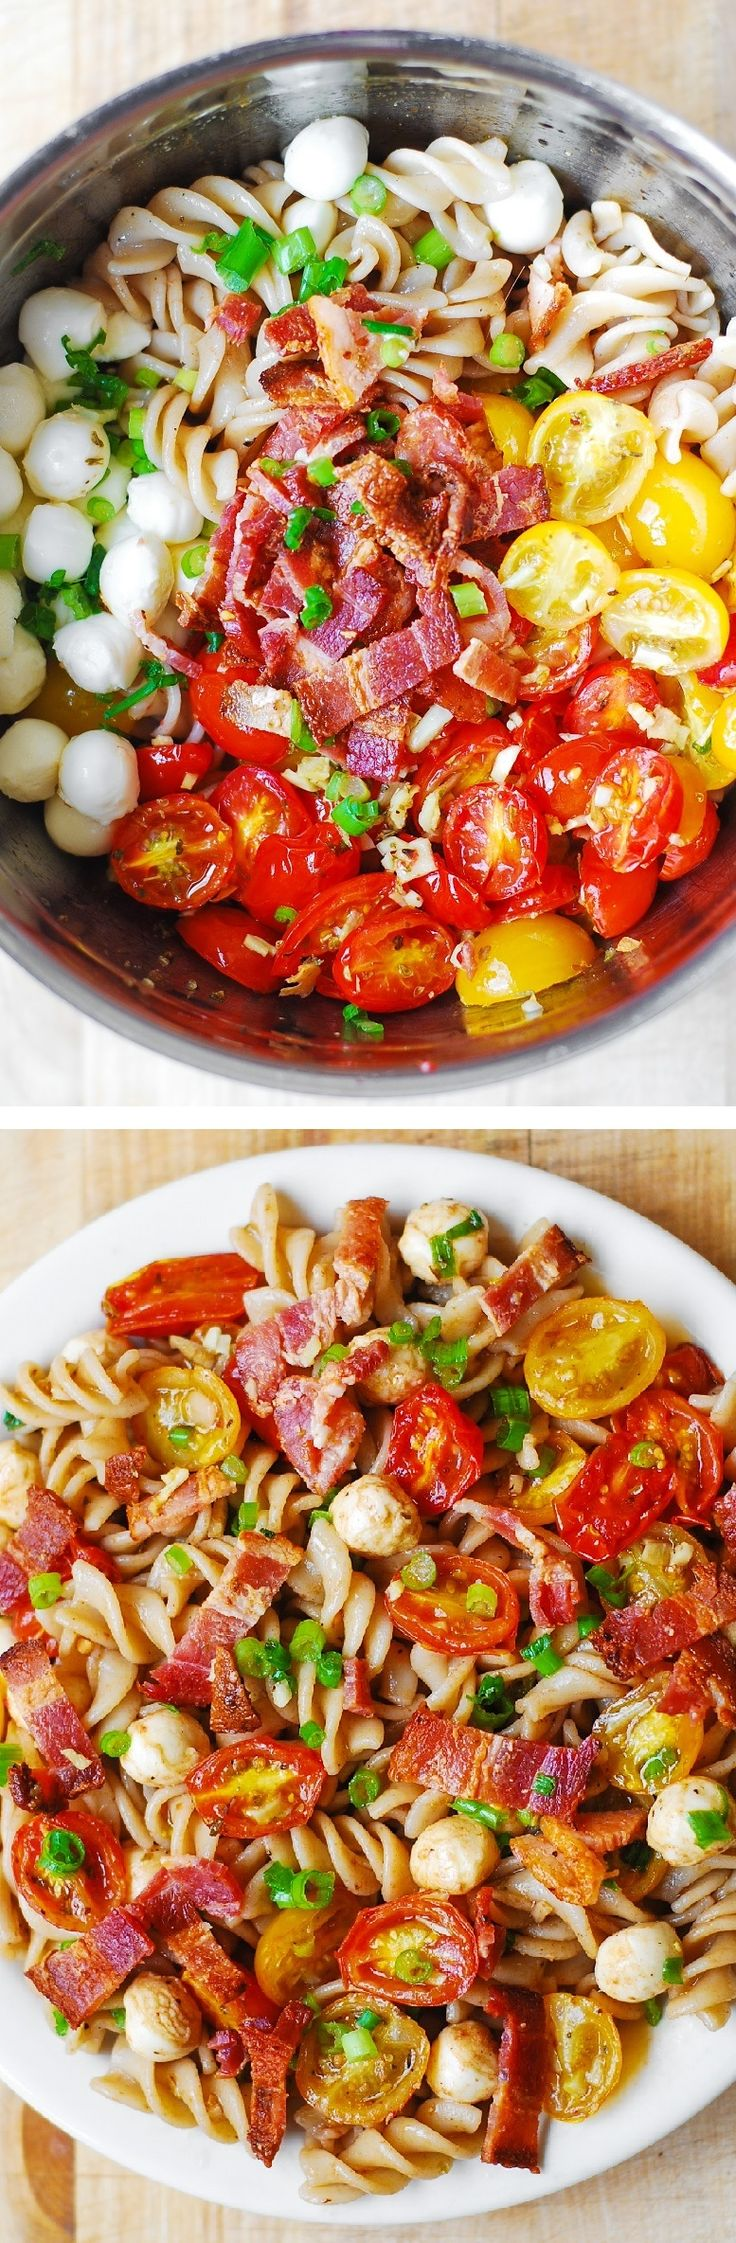 Pasta Salad with Bacon, Garlic Roasted Tomatoes and Mozzarella – delicious, healthy recipe!